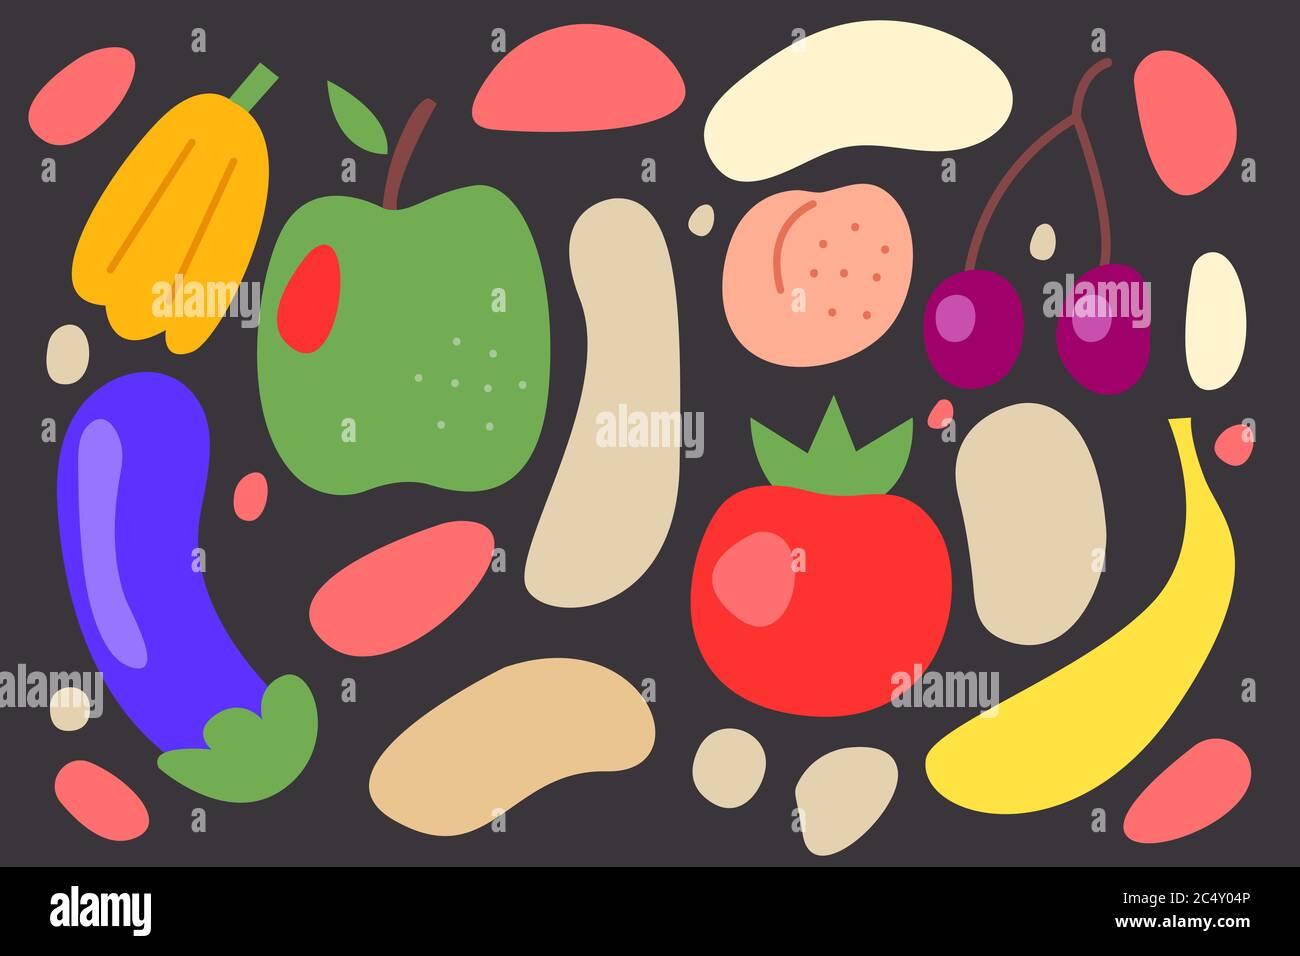 Vegetarian Banner Vegan Food Background Doodles Hand Drawn Fruits And Vegetables Stock Vector Image Art Alamy